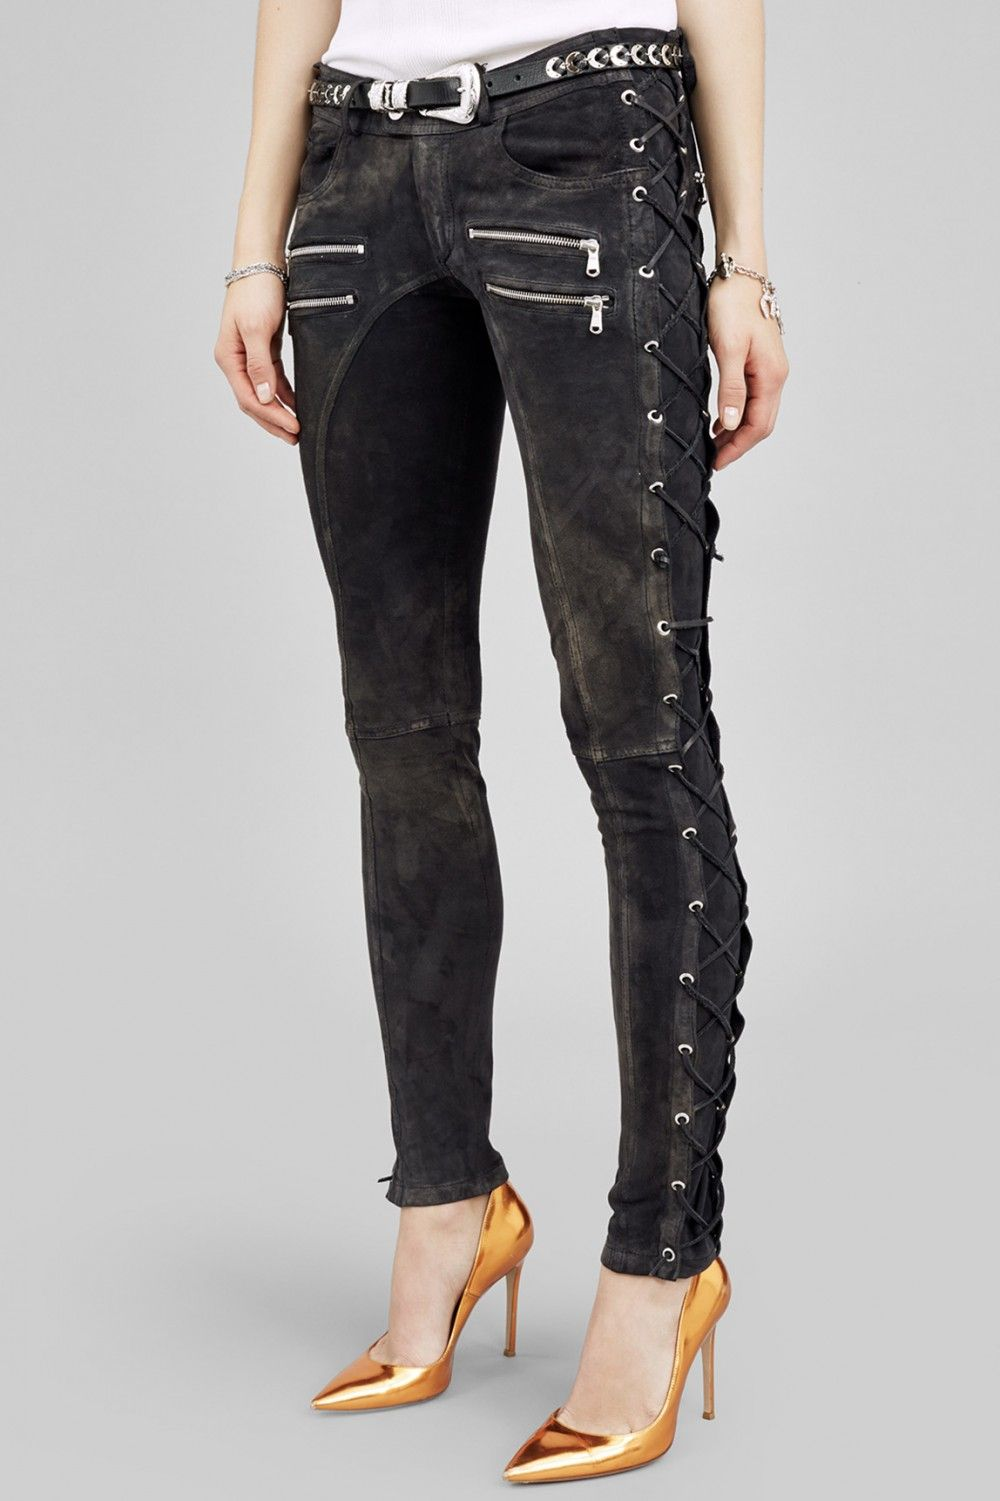 dcdb5c9797b Faith connexion Zipper Pocket Pants With Lace Up Side in Black | Lyst